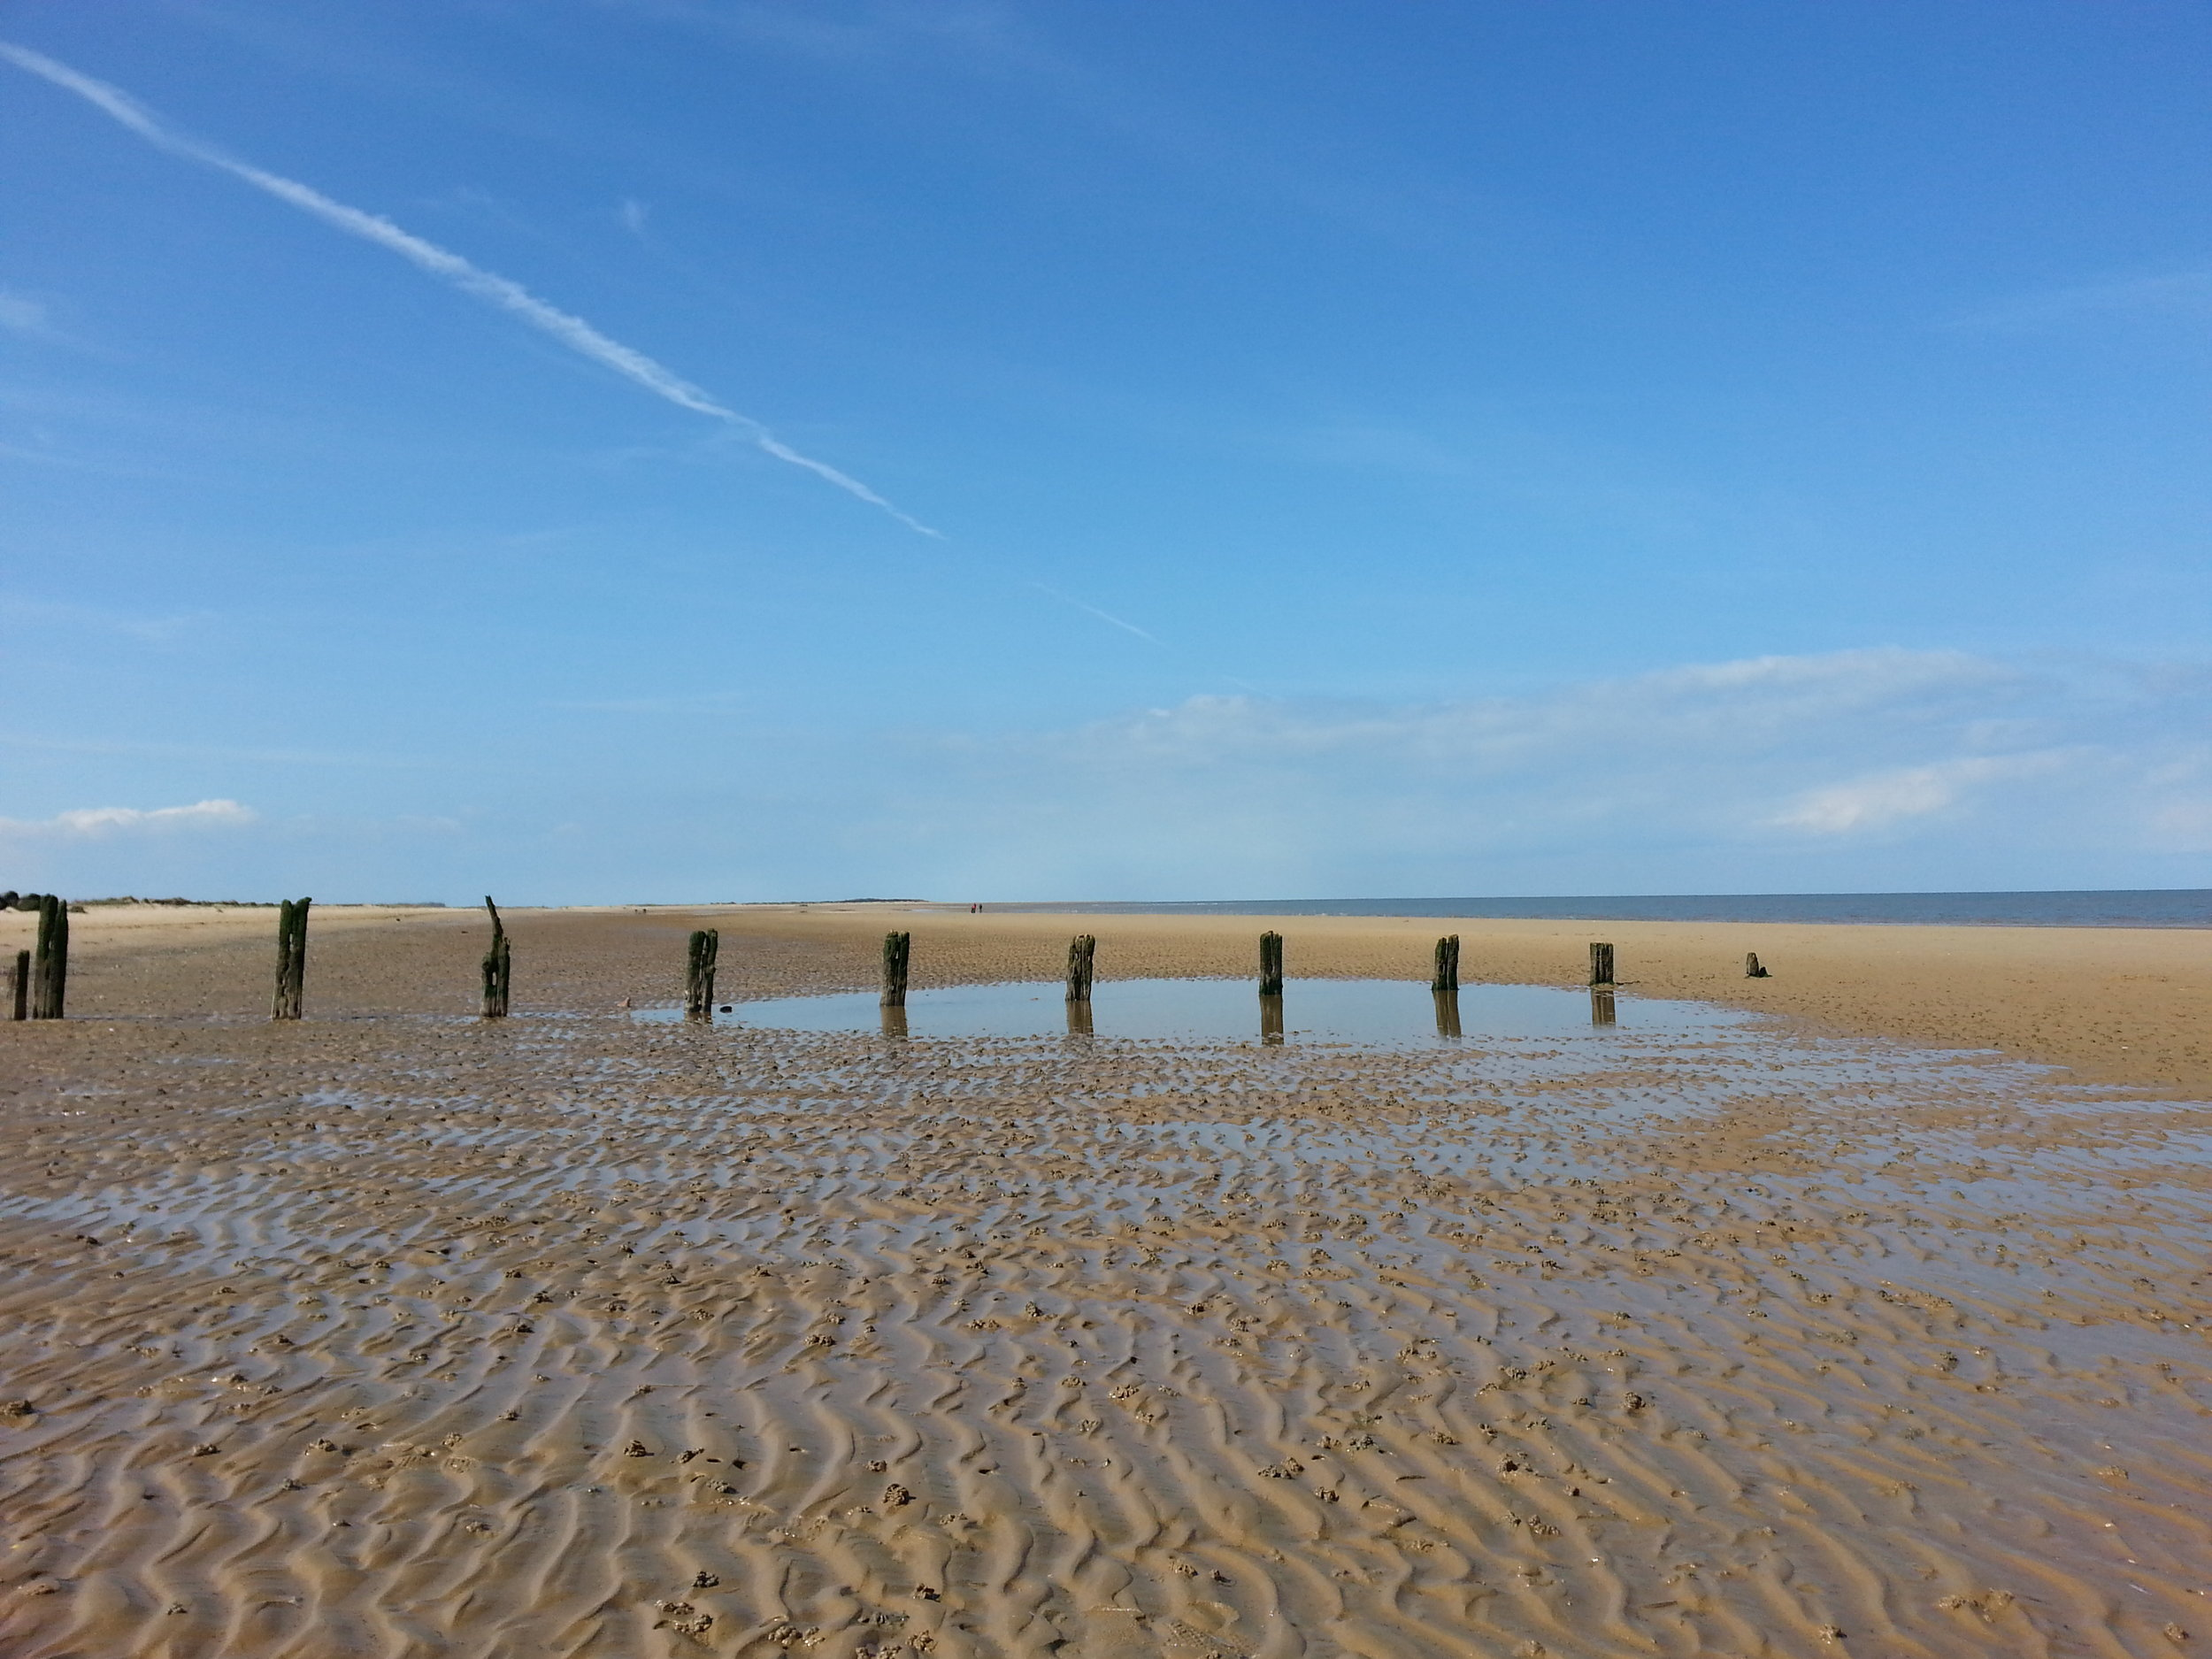 Brancaster - Brancaster beach is yet another of Norfolk's glorious beaches, with miles and miles of unspoilt golden sand, as far as the eye can see, and also has the added advantage of housing the remains of an old shipwreck, seen when the tide is out.